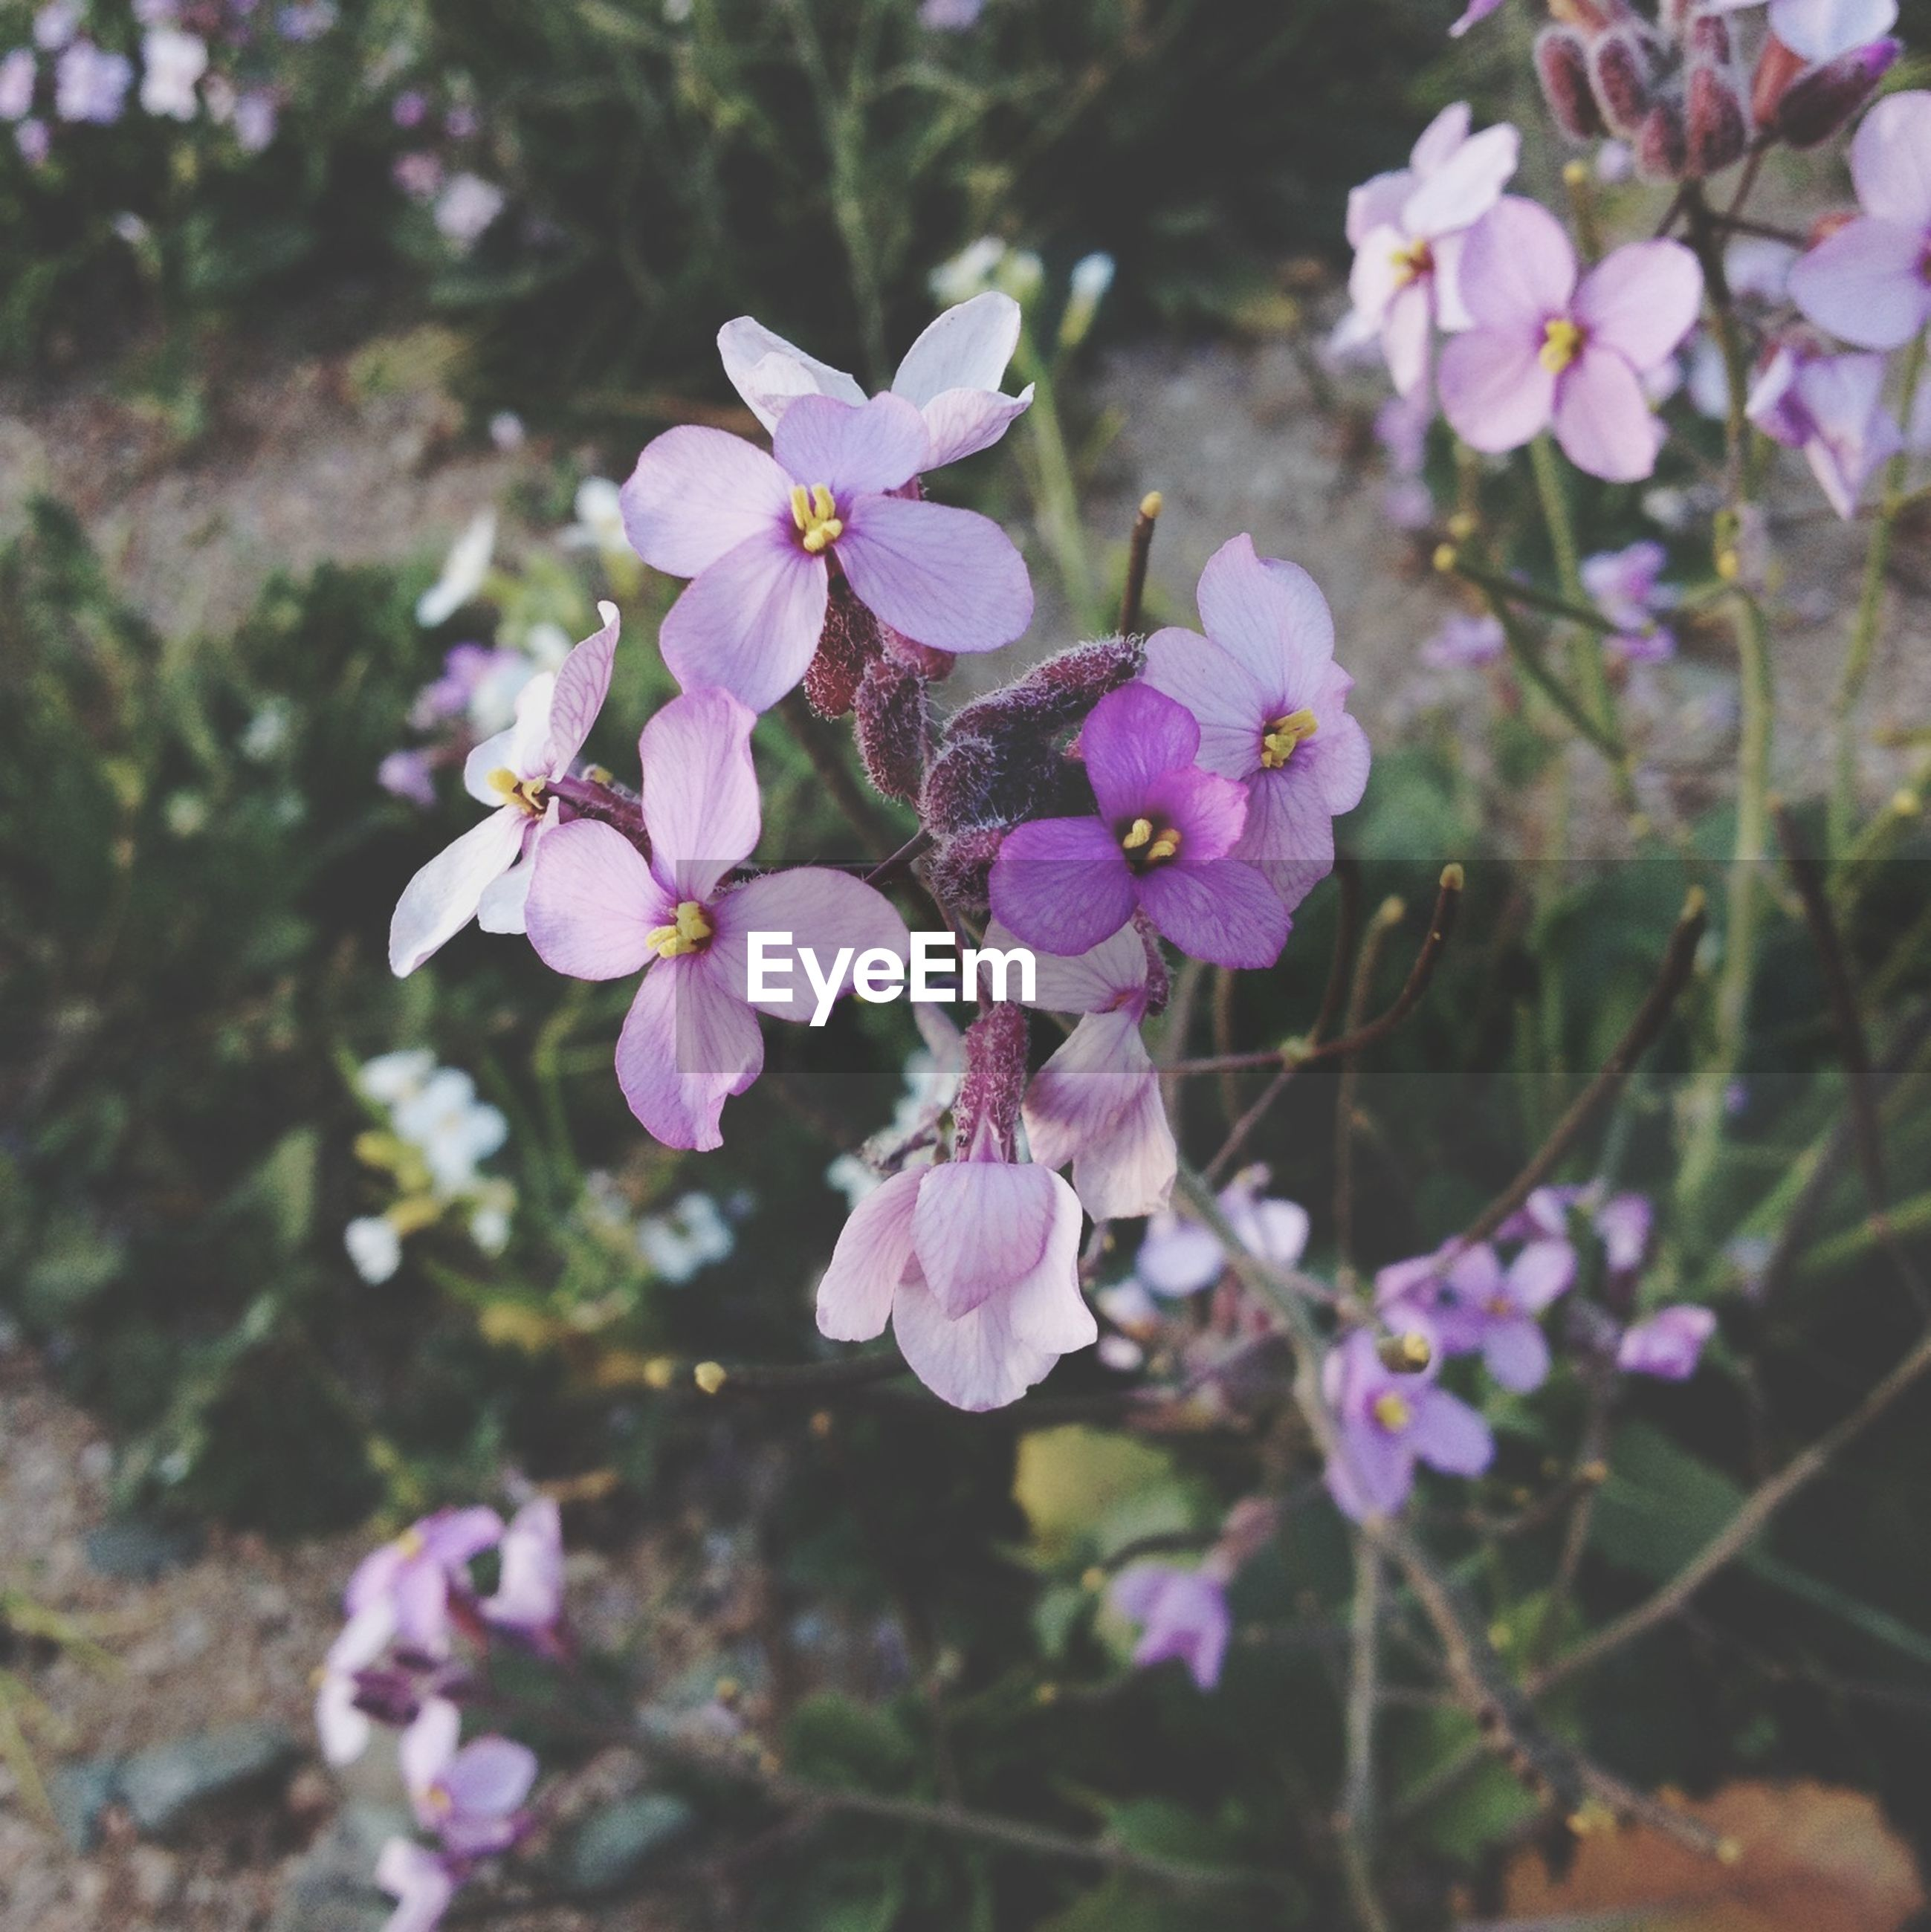 flower, freshness, growth, fragility, purple, beauty in nature, focus on foreground, petal, nature, close-up, blooming, plant, in bloom, flower head, blossom, branch, pink color, day, outdoors, springtime